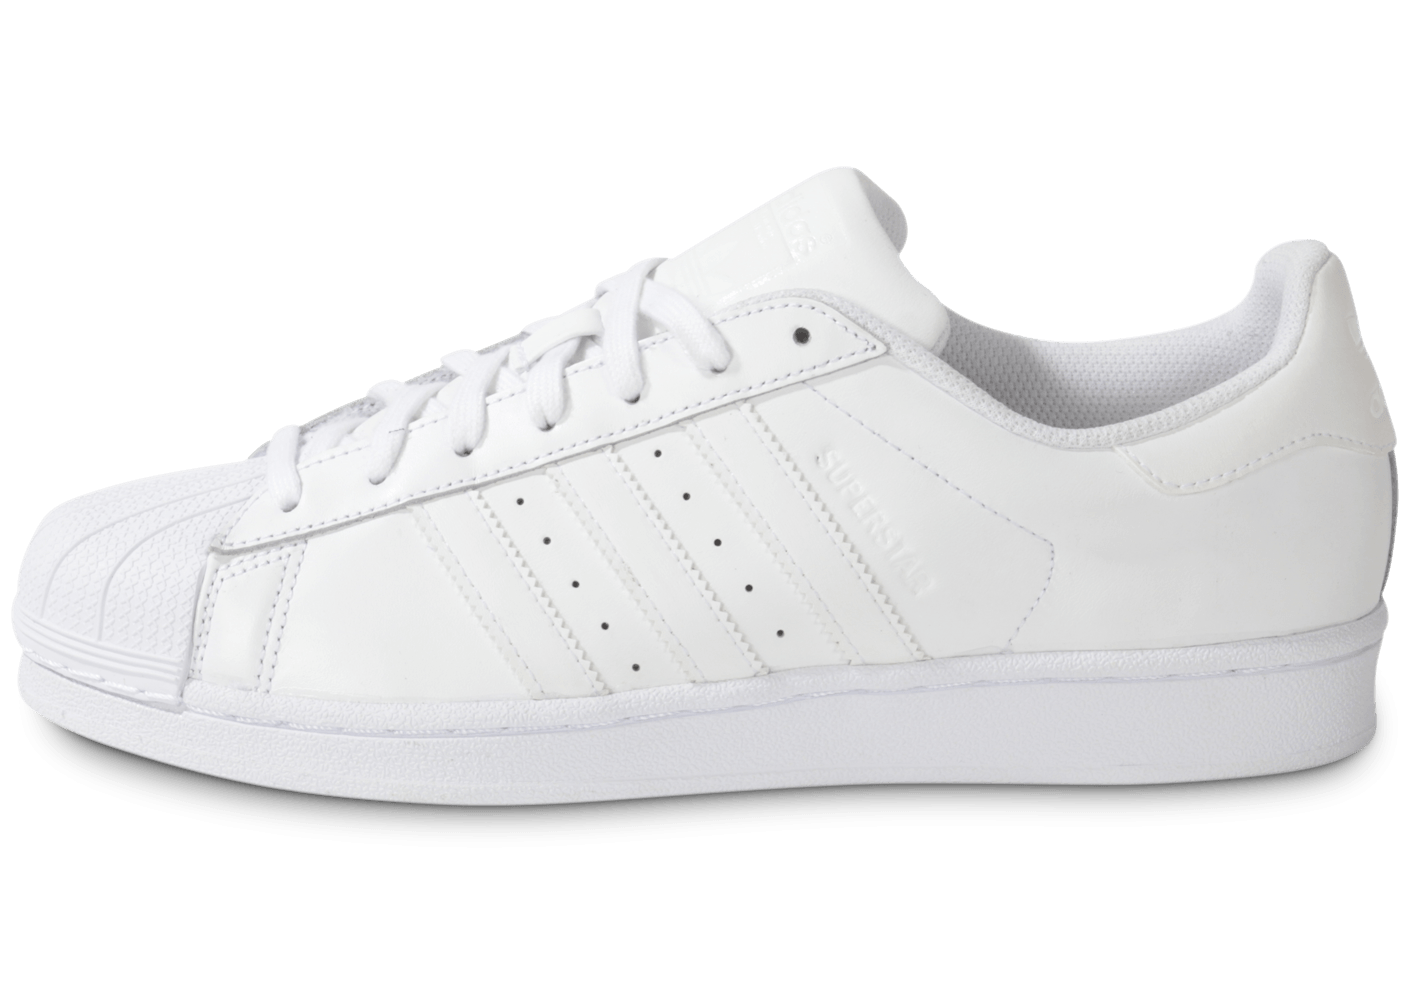 adidas Superstar Foundation blanche - Chaussures